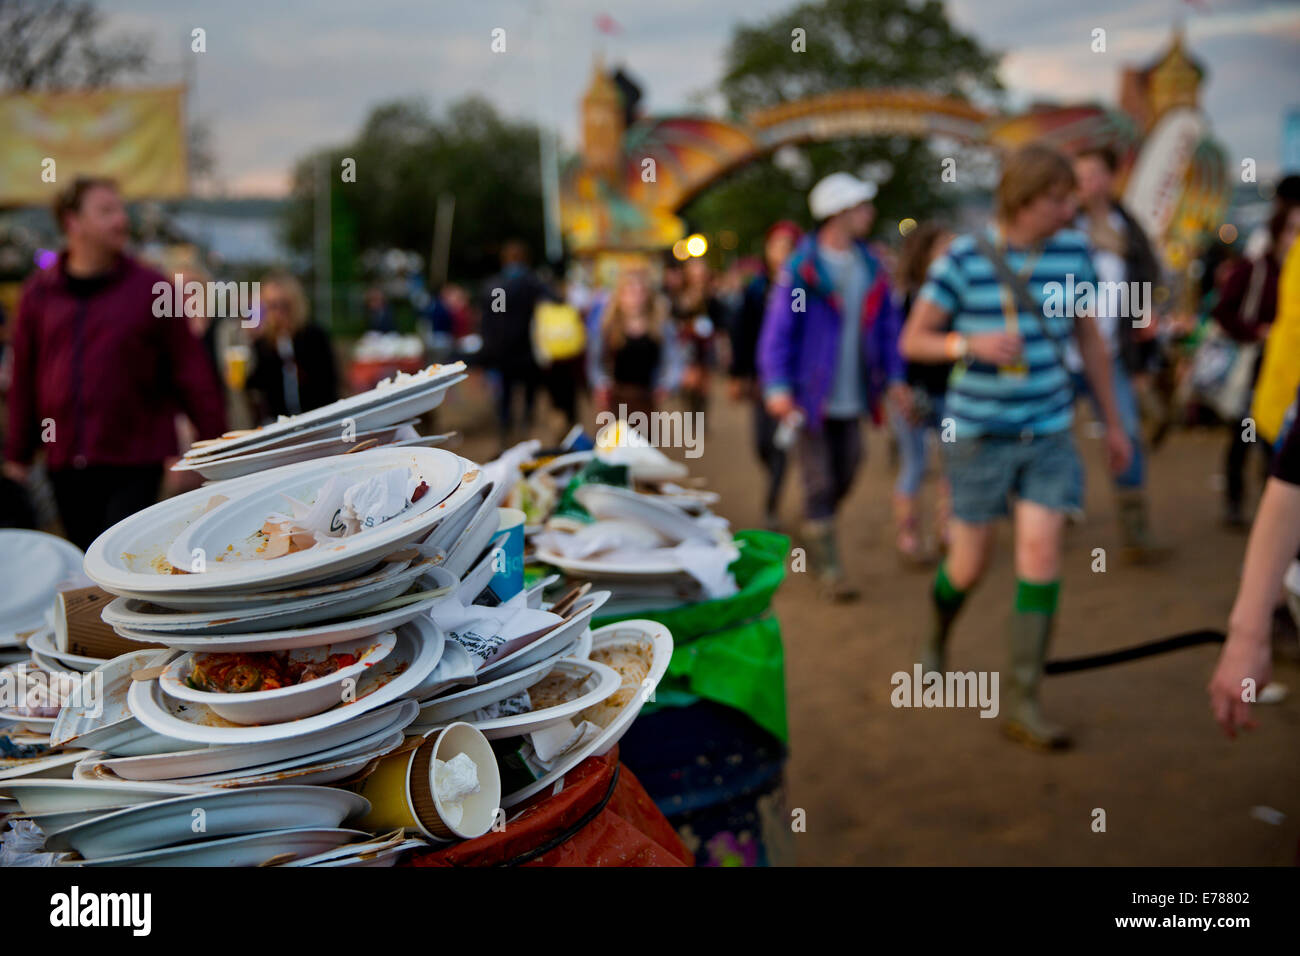 Rubbish collected daily from one of the 15,000 colourful oil drums dotted around the Glastonbury Festival site 2014. - Stock Image